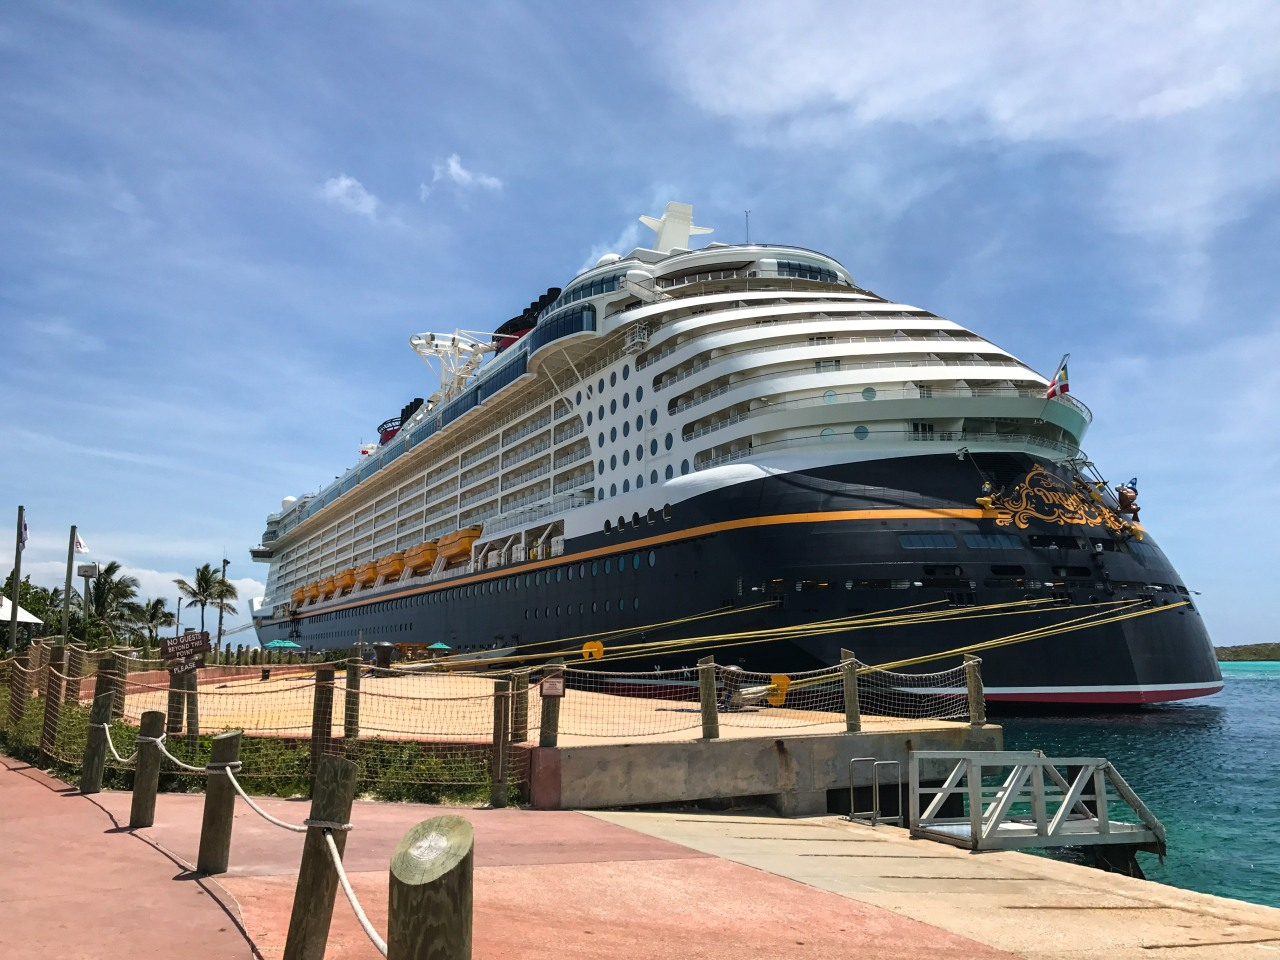 Sailing With Disney – Debark and Final Thoughts